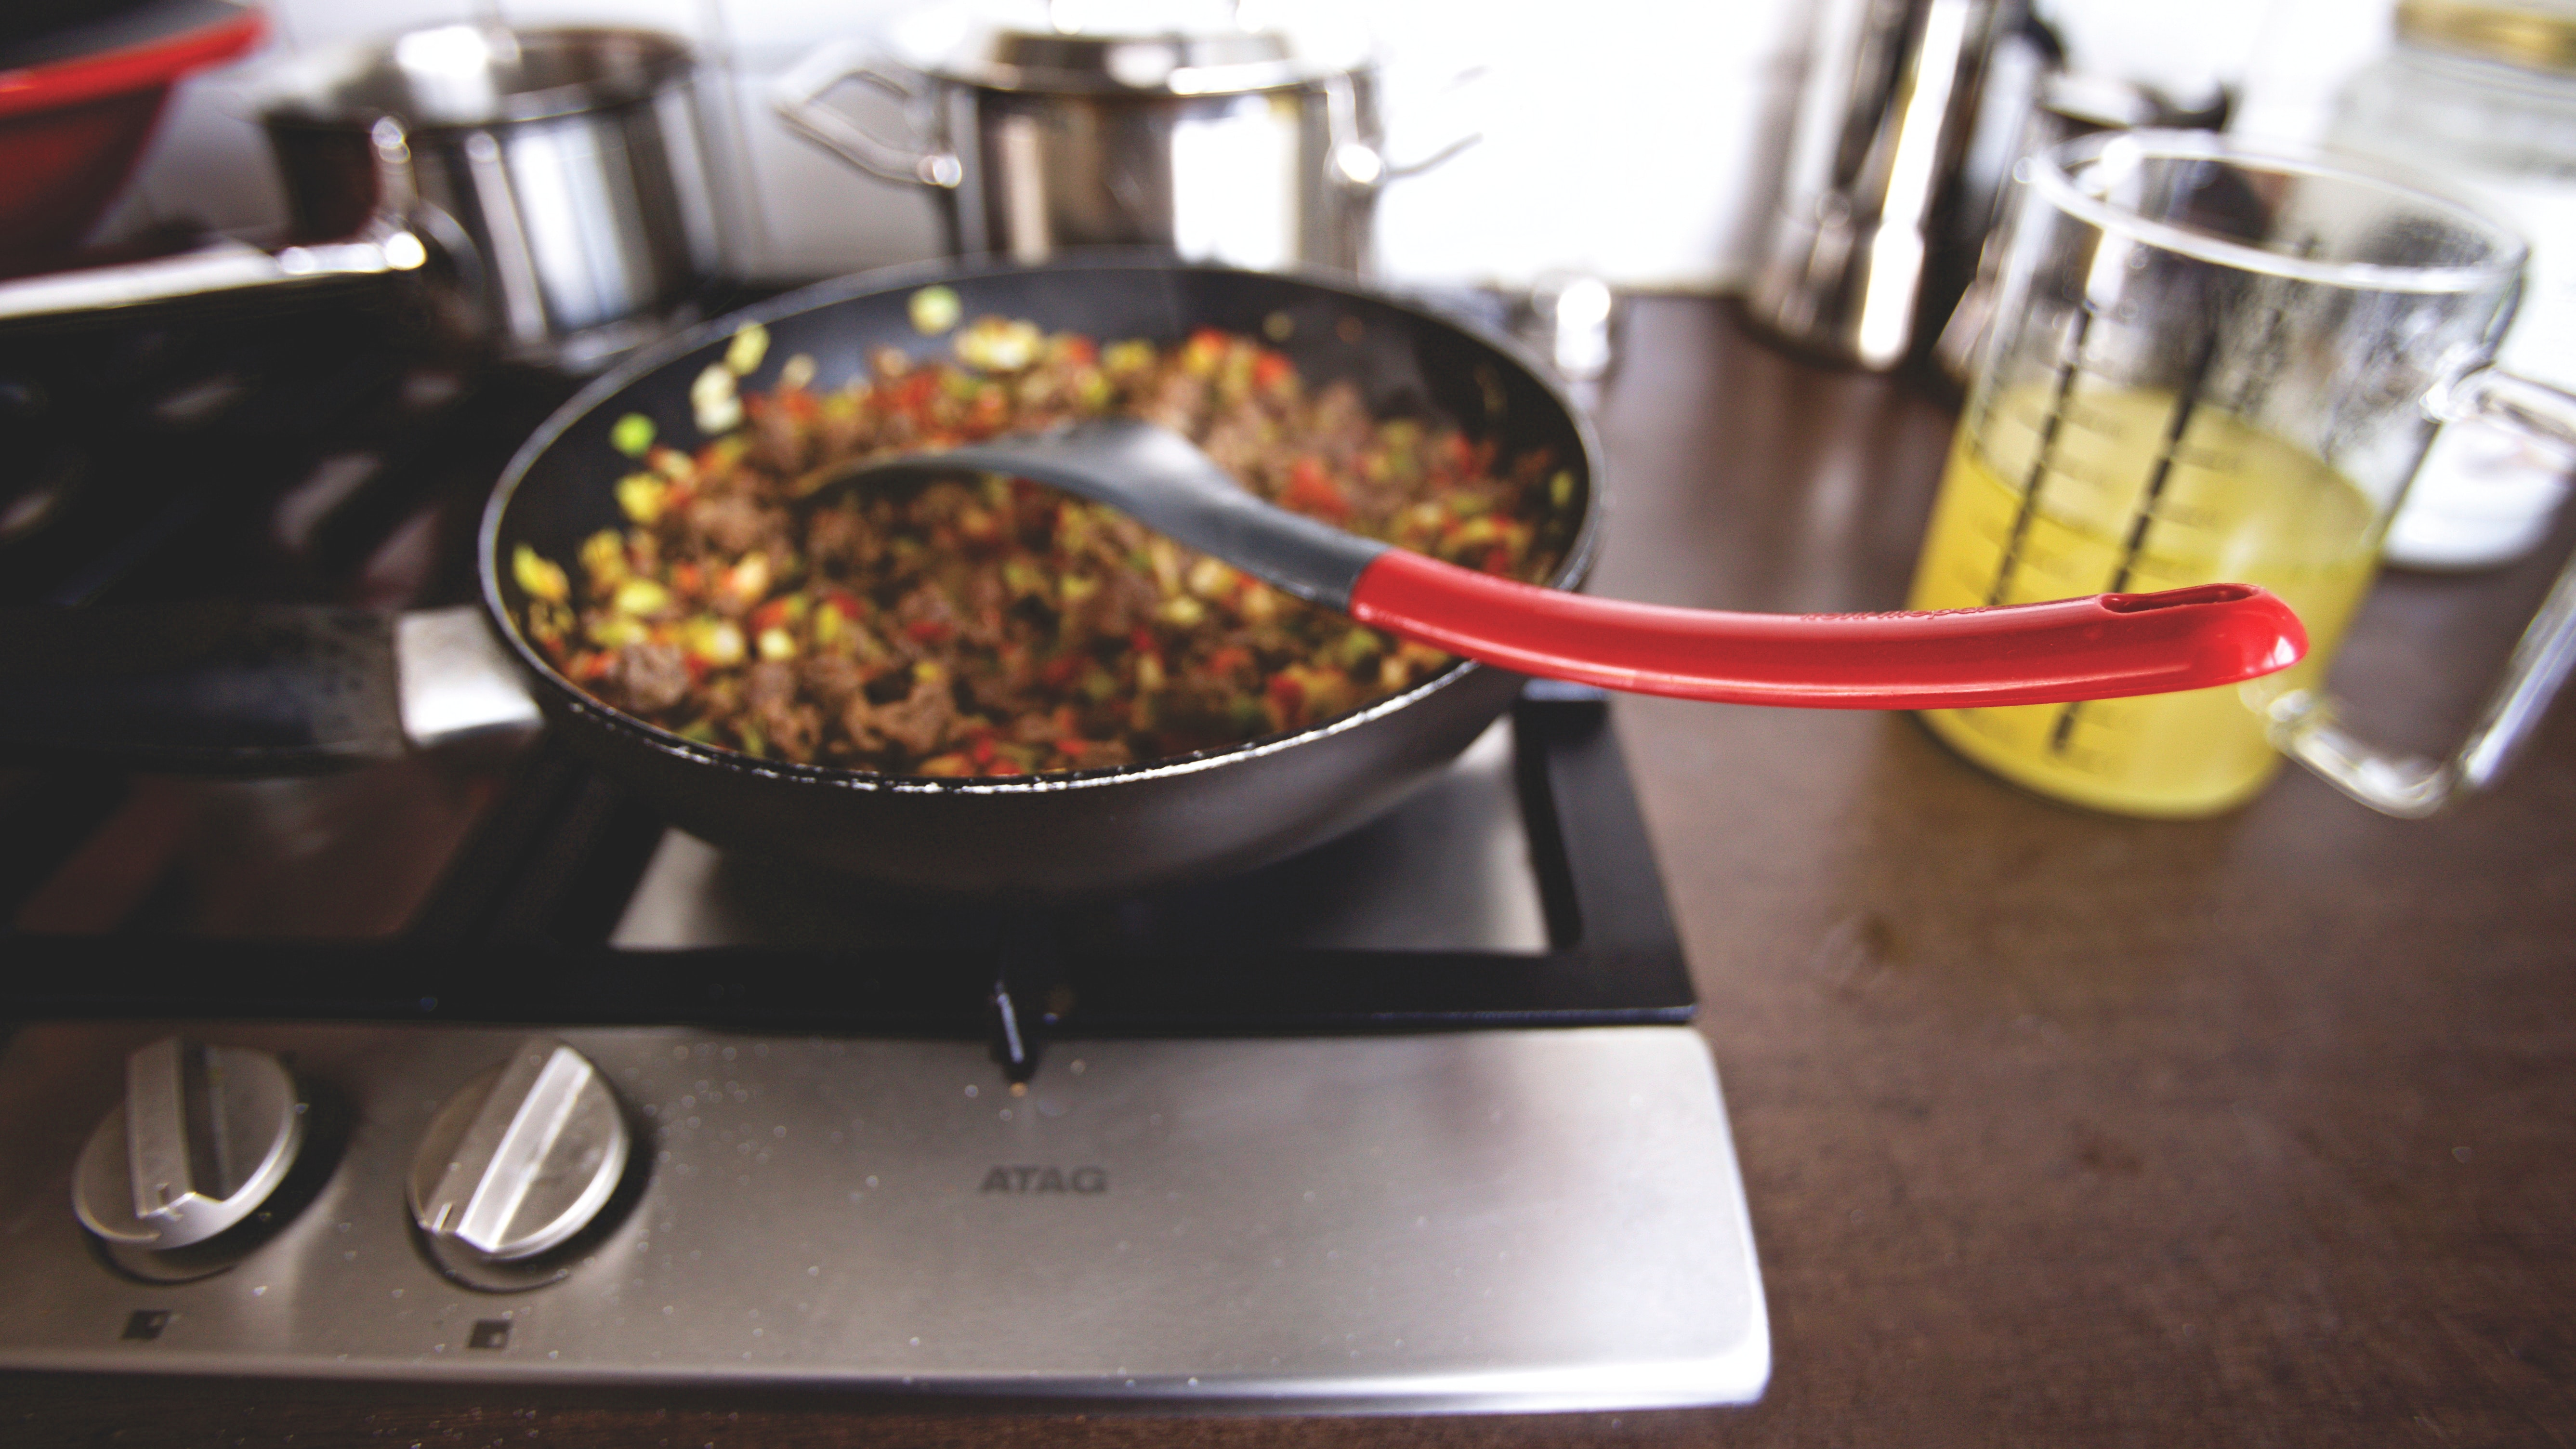 Dish Cooking on Black Non Stick Pan on a Burner, Cooked, Cooking, Dinner, Food, HQ Photo